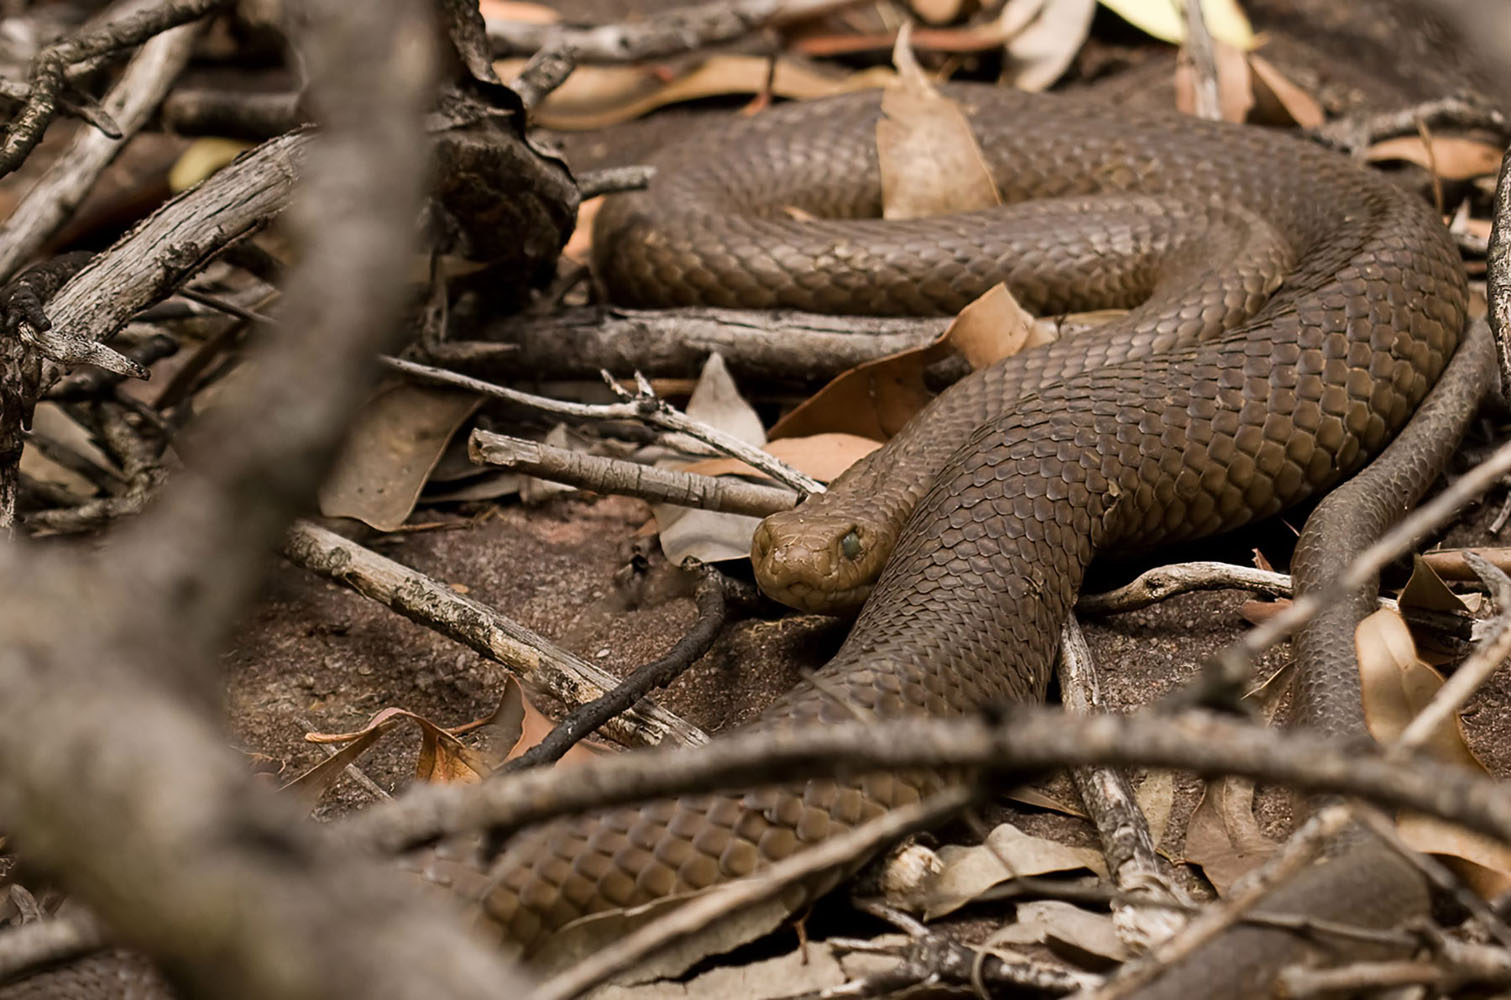 A large Eastern Brown Snake hiding in leaves